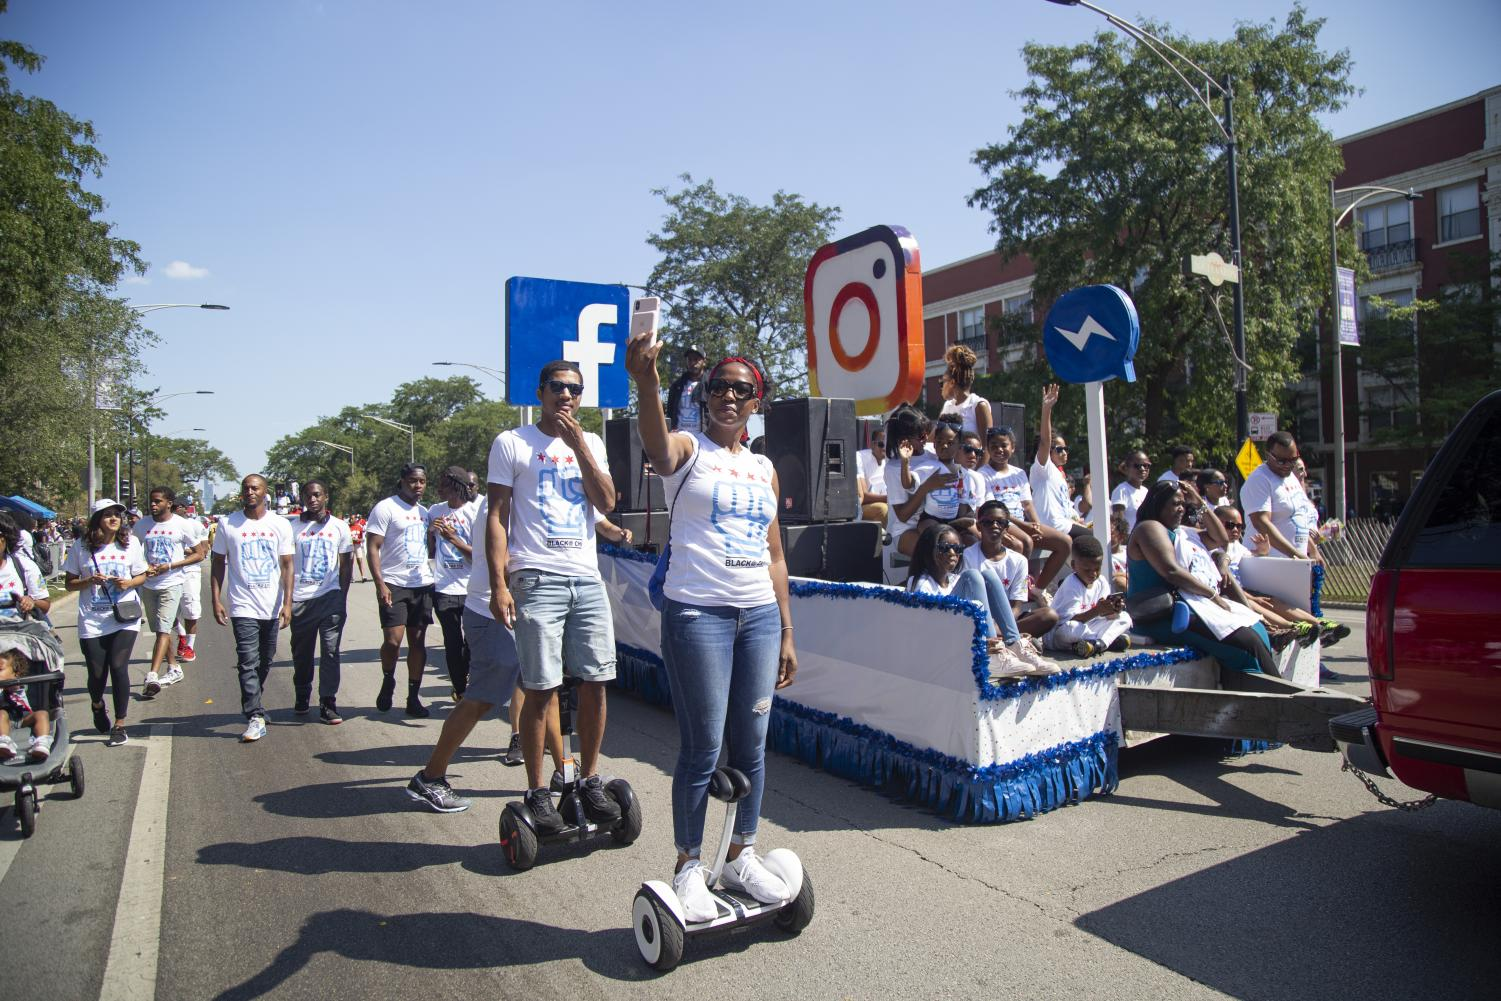 Facebook+Chicago+marches+down+South+King+Drive+at+the+Bud+Billiken+Parade.